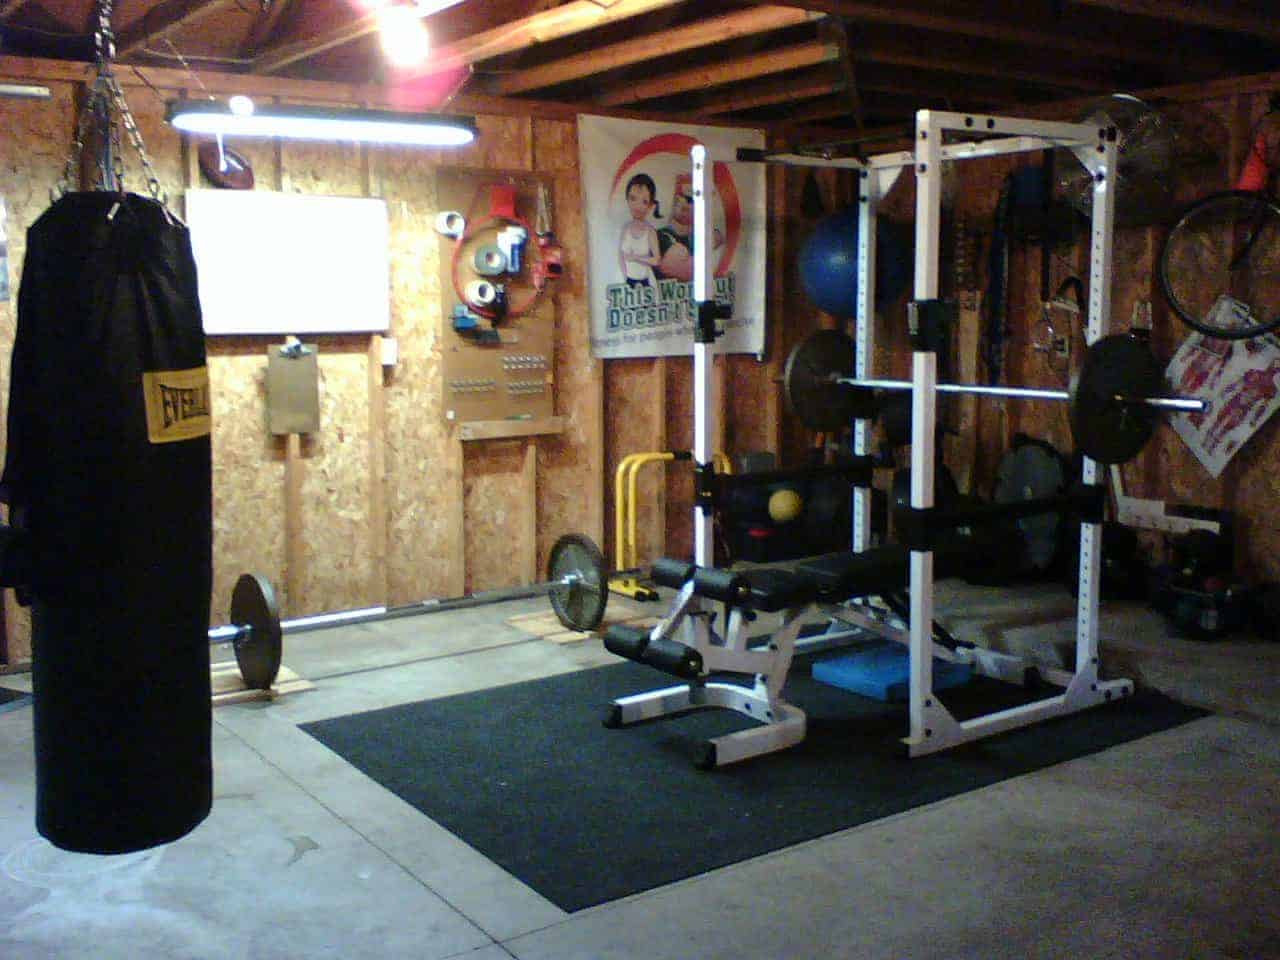 Benefits of home fitness equipment why i own home gym for Best home gym design ideas